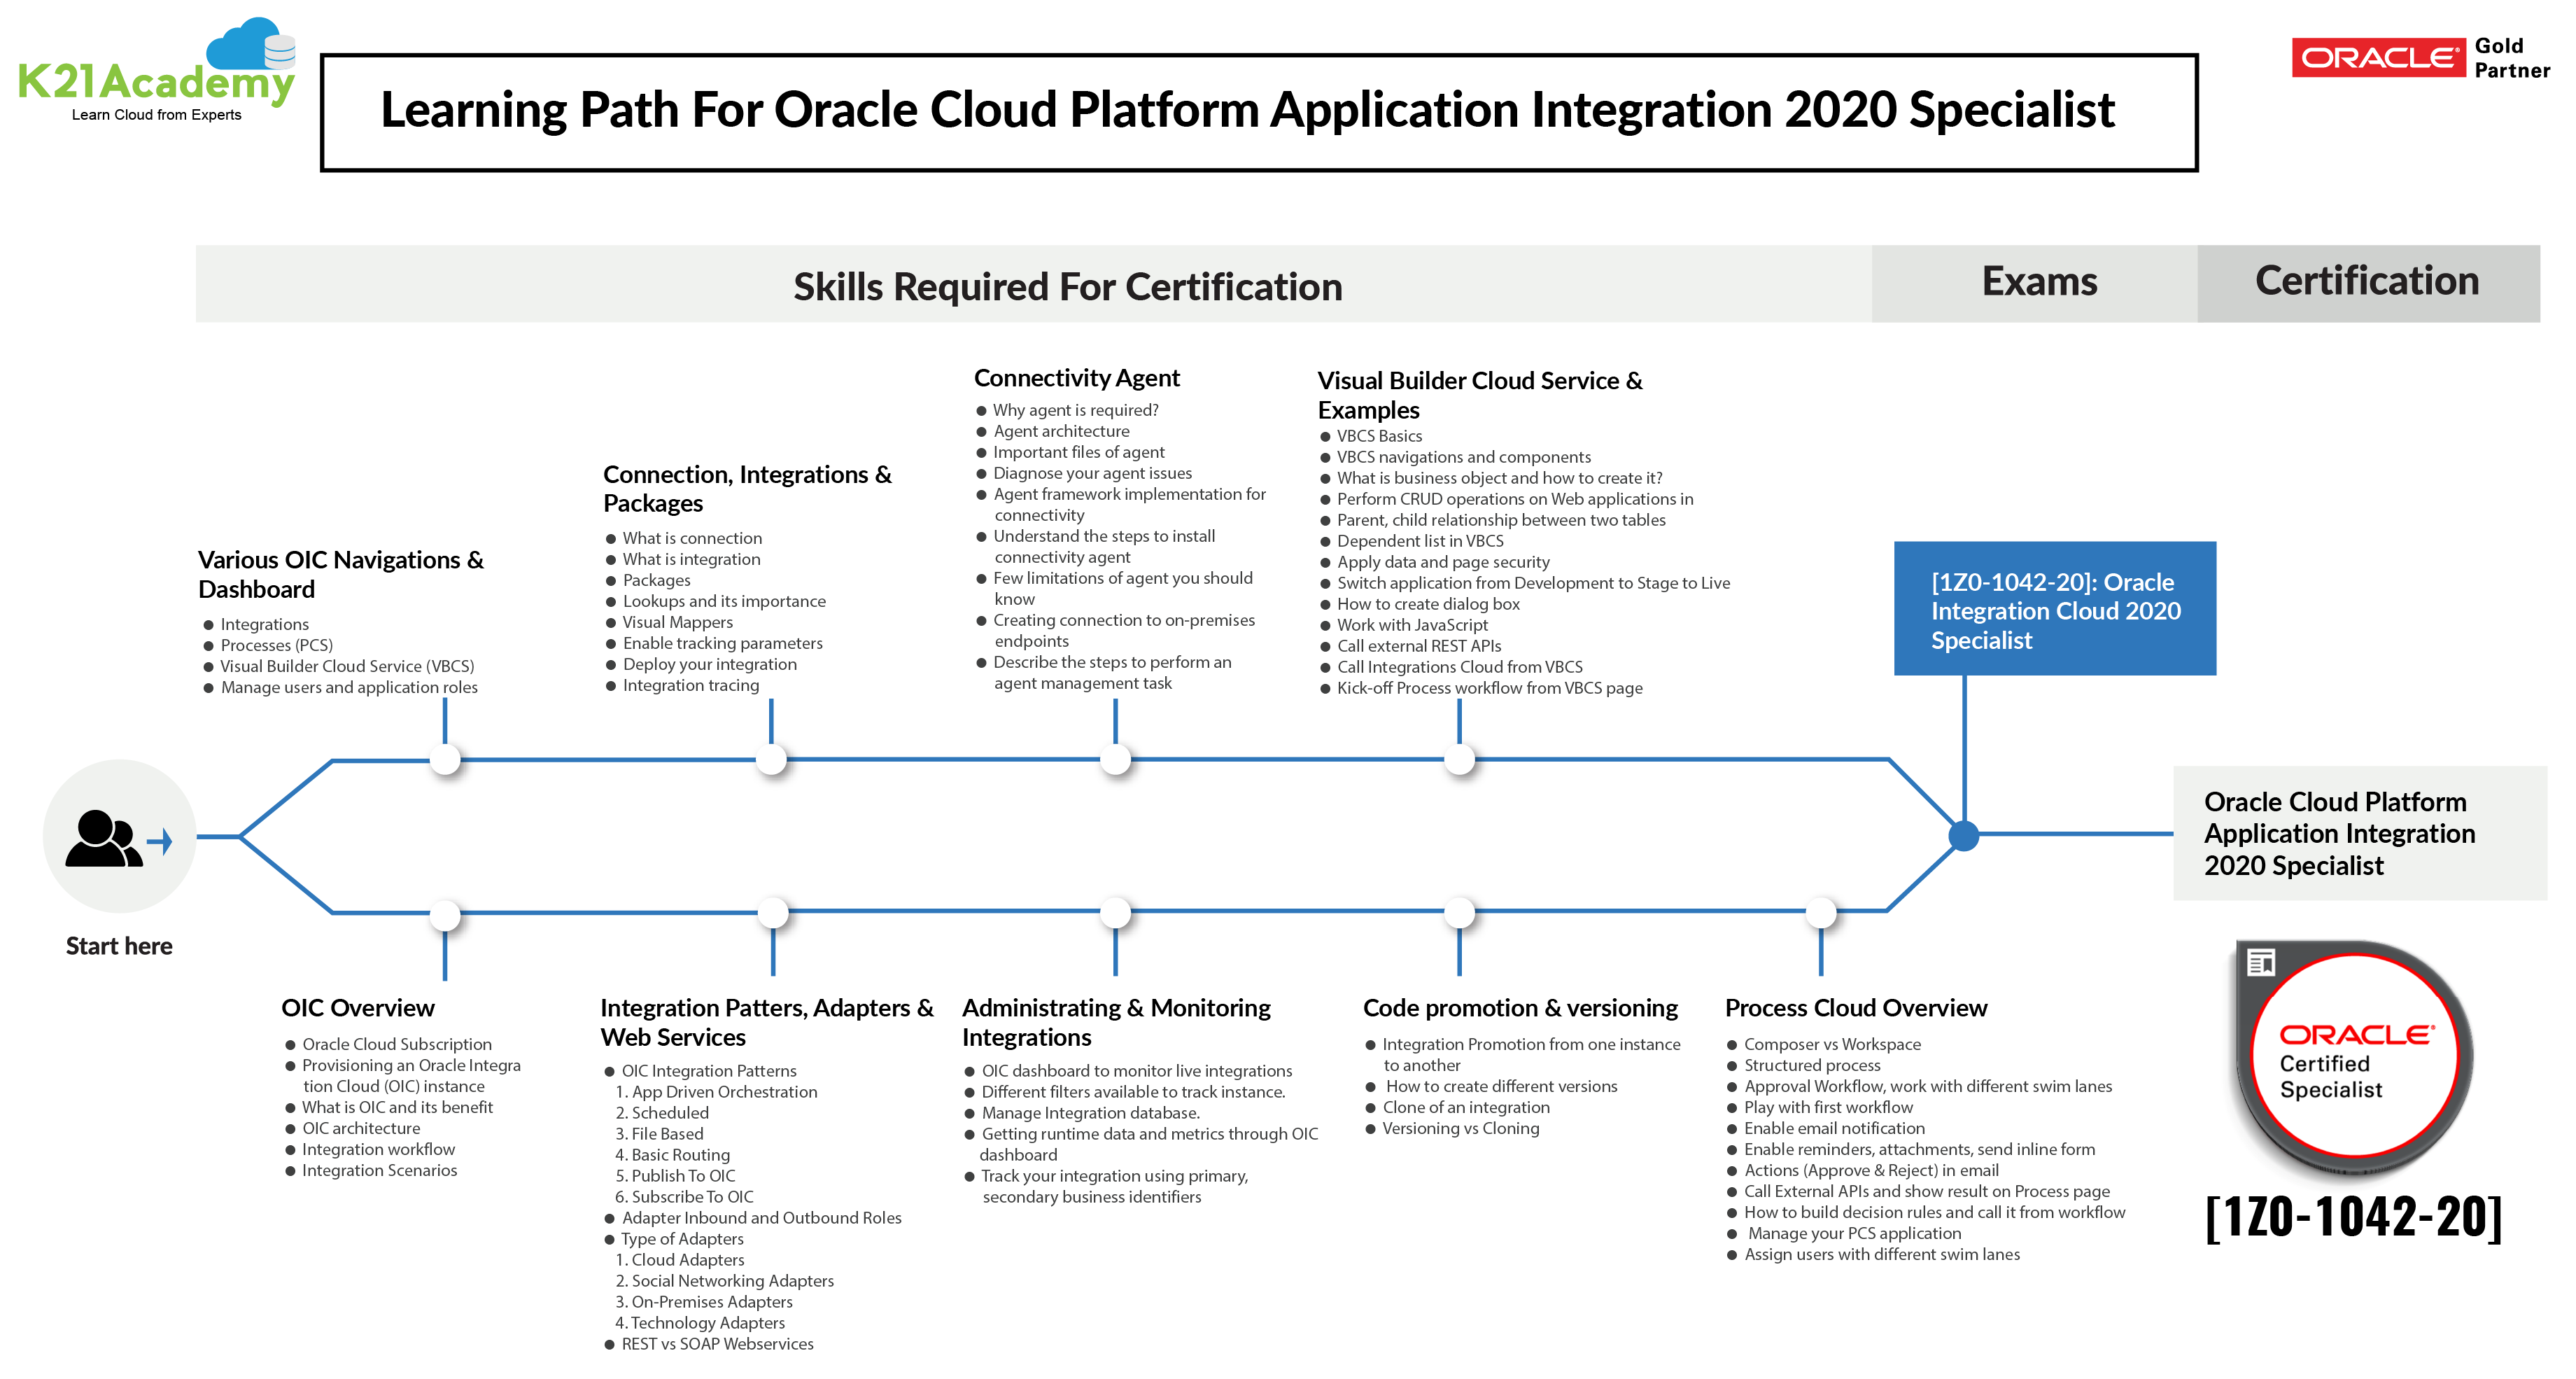 Oracle Integration Cloud Services (OIC)1Z0-1042 Training: Step By Step Activity Guides/Hands-On Lab Exercise